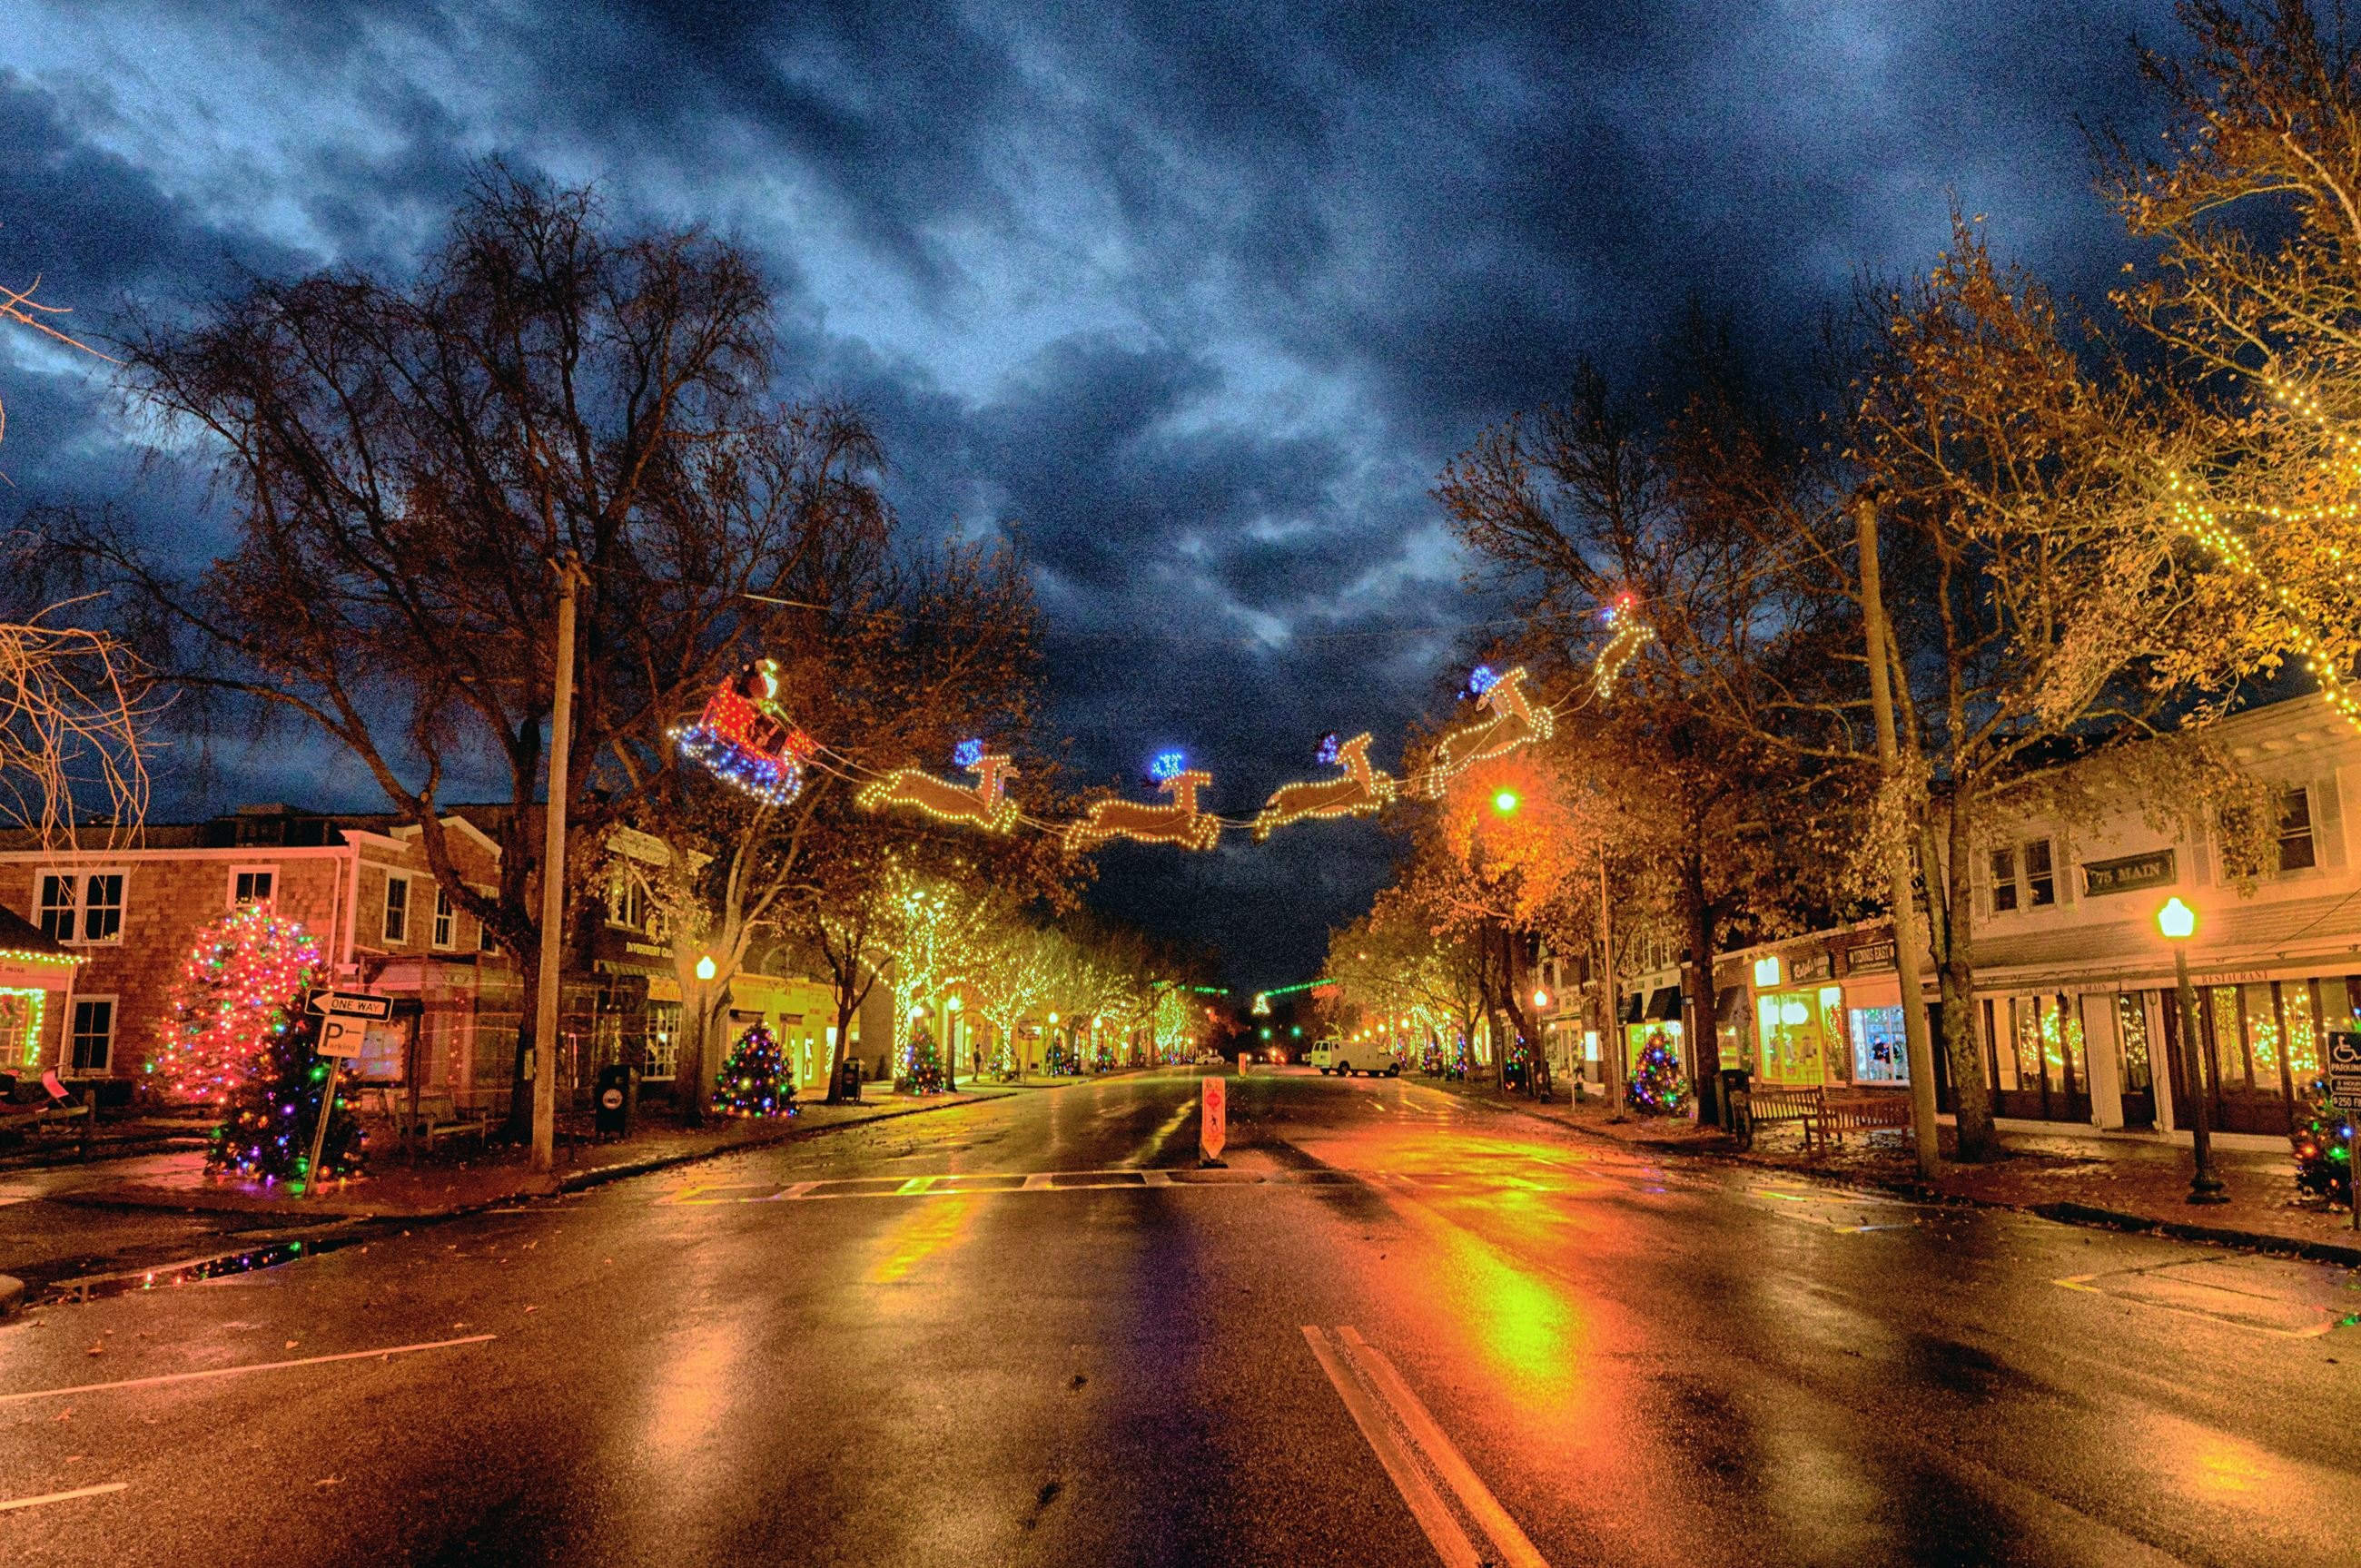 Image of Main Street during the Holidays